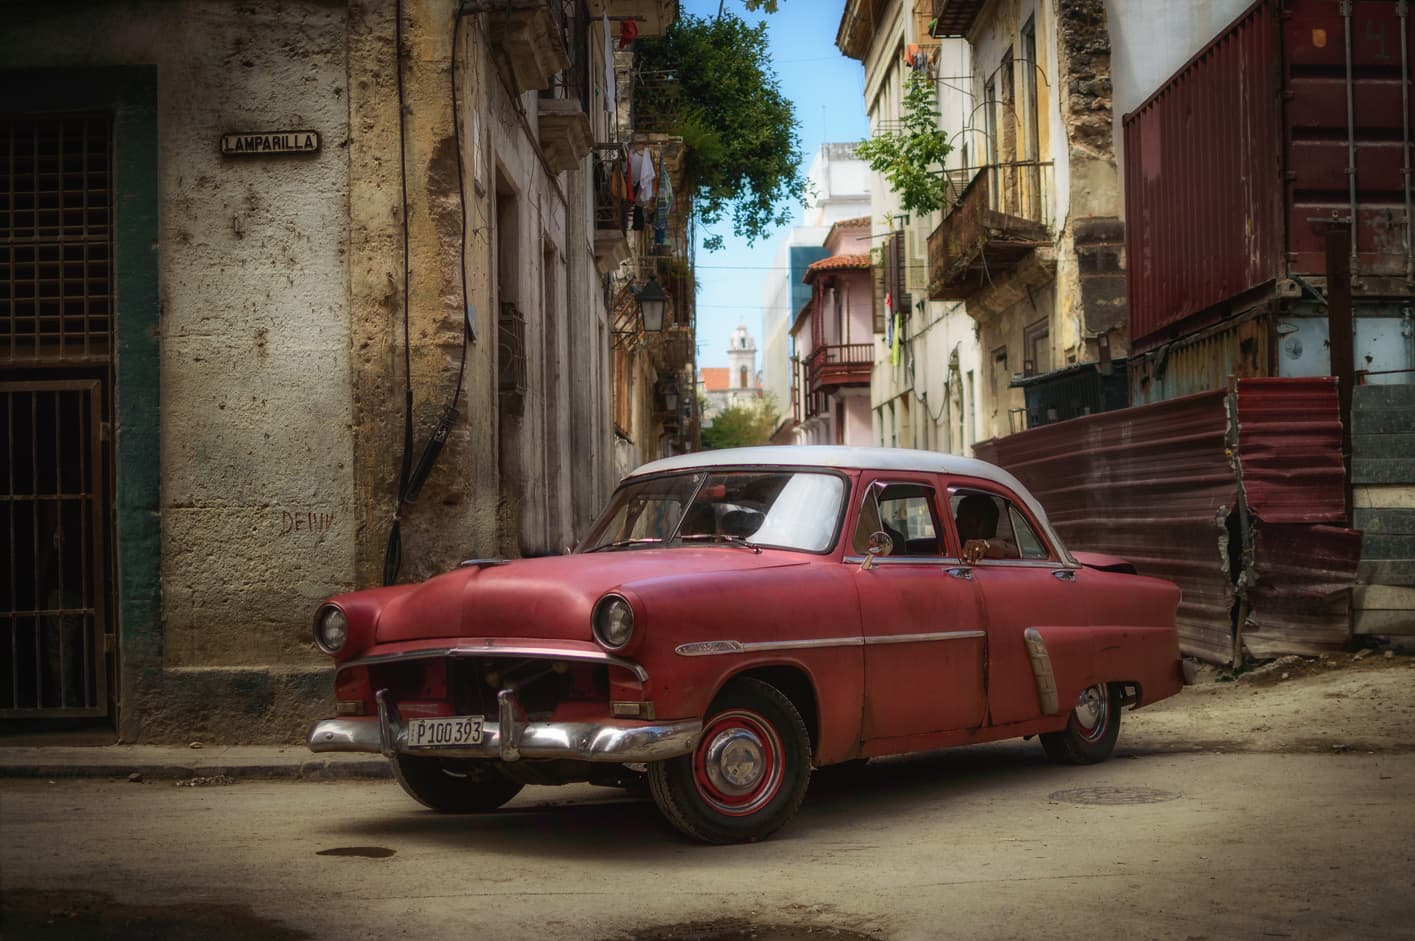 Old red car Lamparilla street old Havana Cuba. Top things to do in Havana.